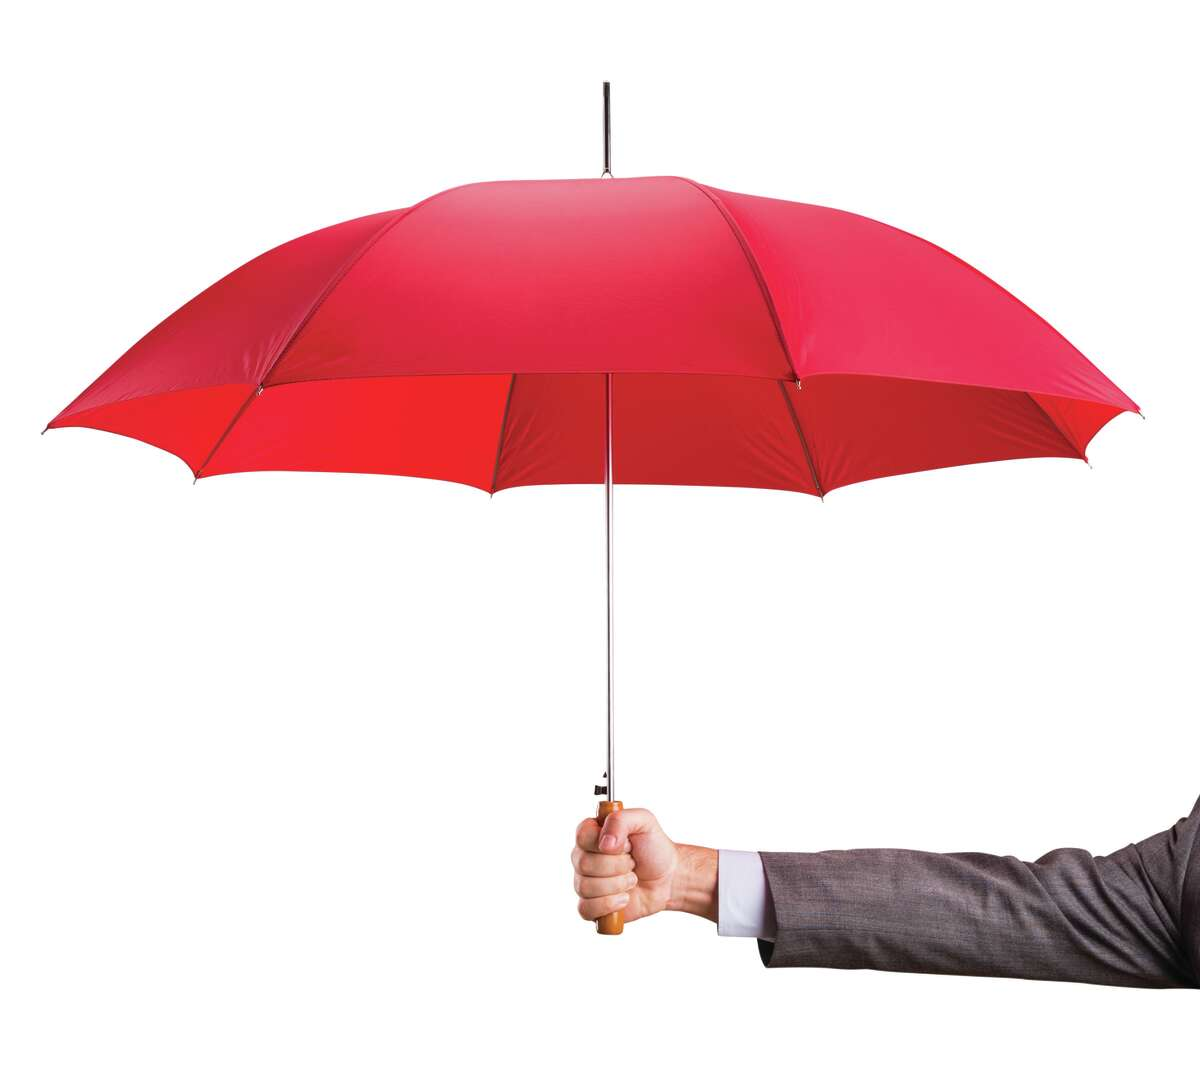 Rain drops or sunshine either way this things got you covered. (Fotolia)